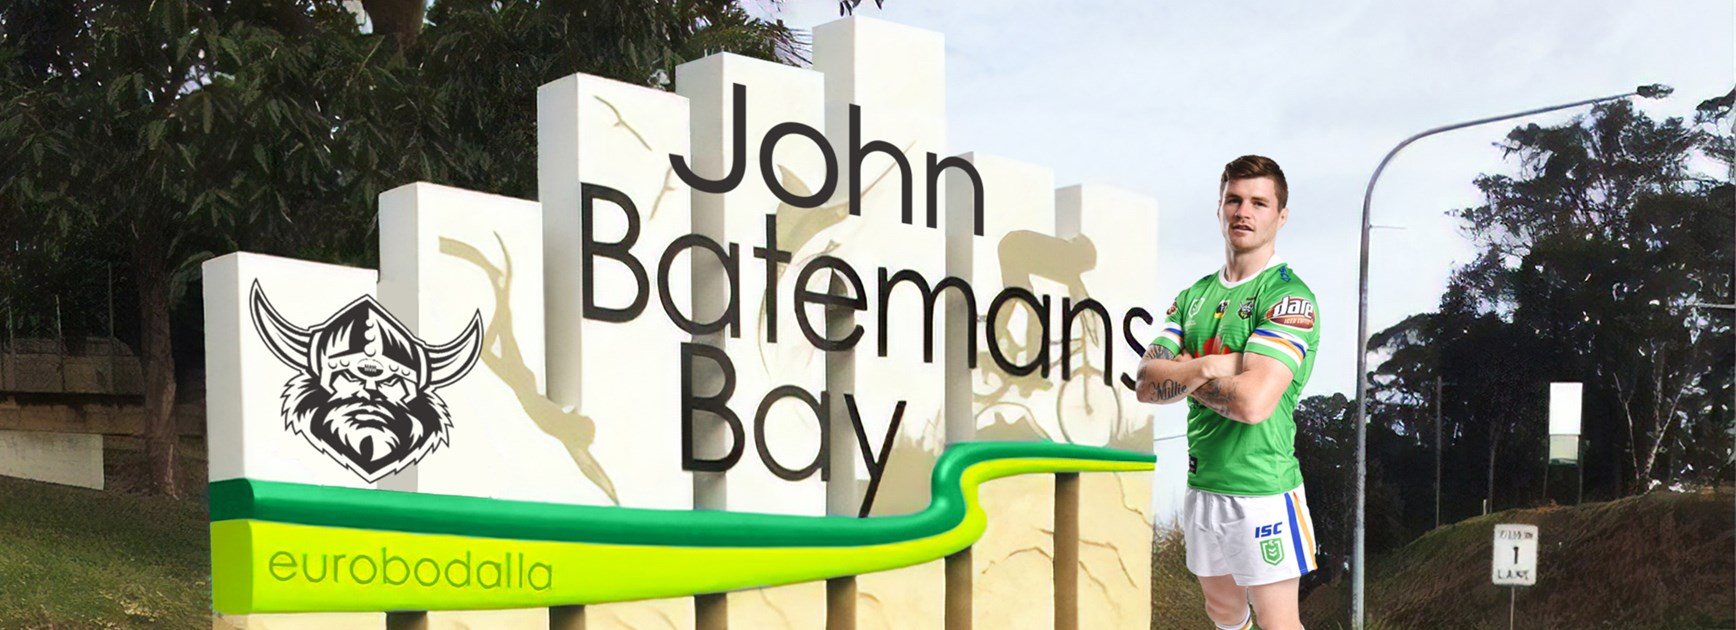 John Bateman's Bay: Online petition calls for town to be renamed